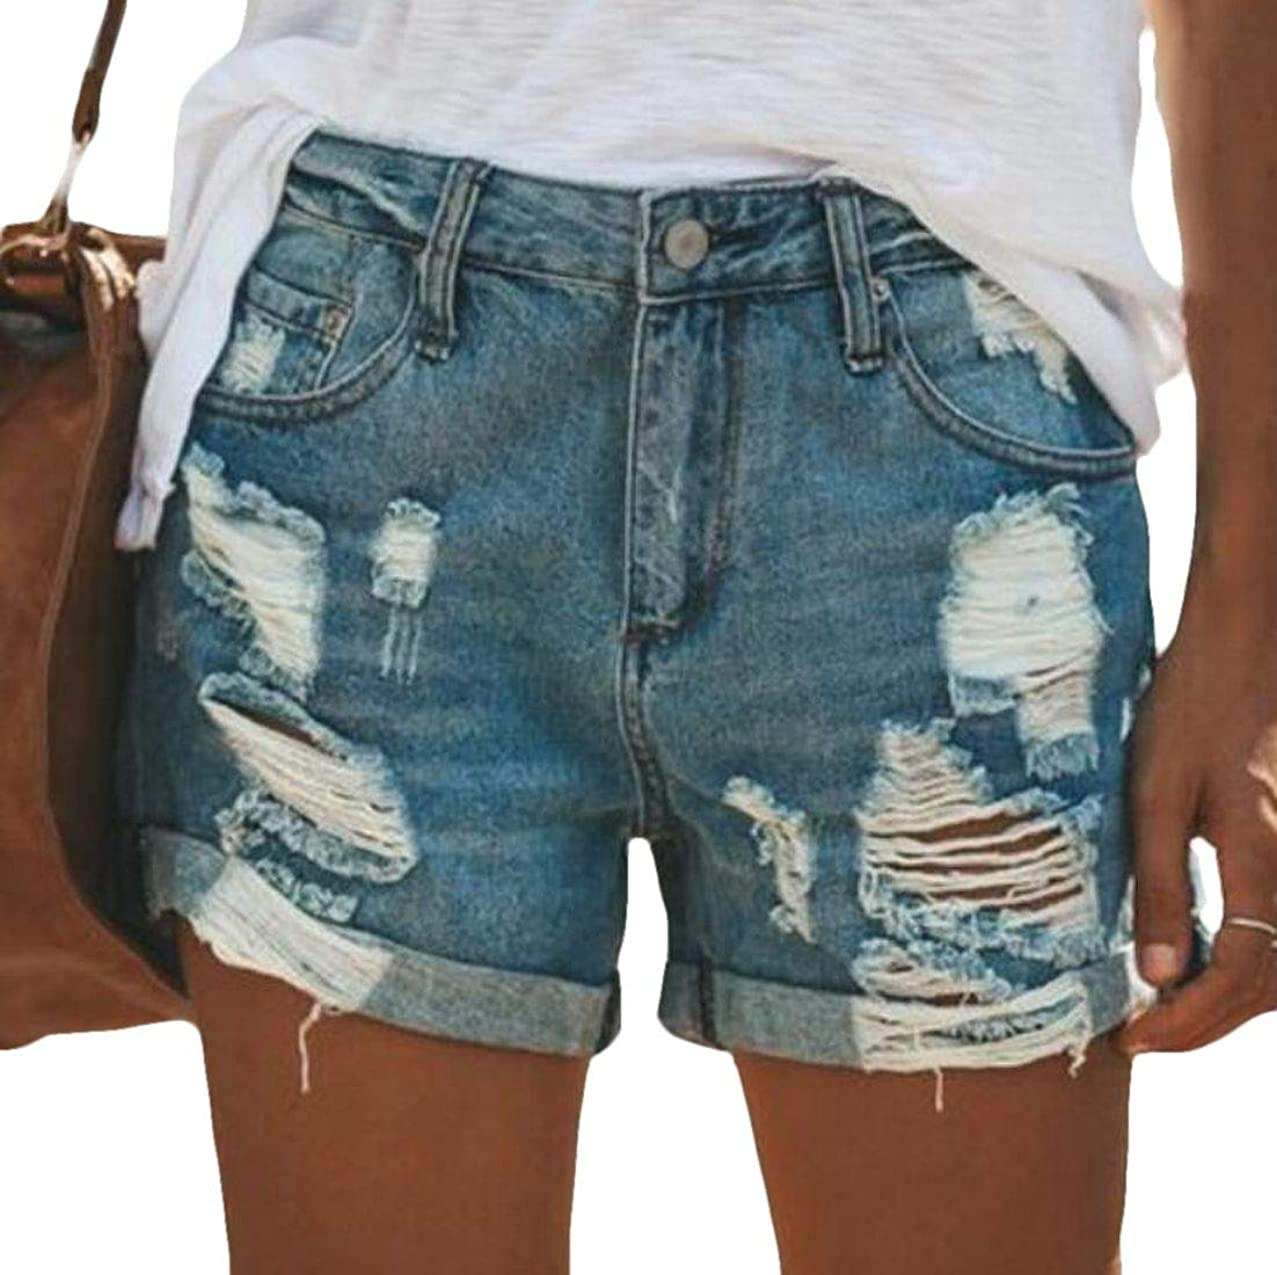 Domple Womens Sexy Pockets Destroyed Ripped Rugged Wear Thong Denim Jeans Shorts